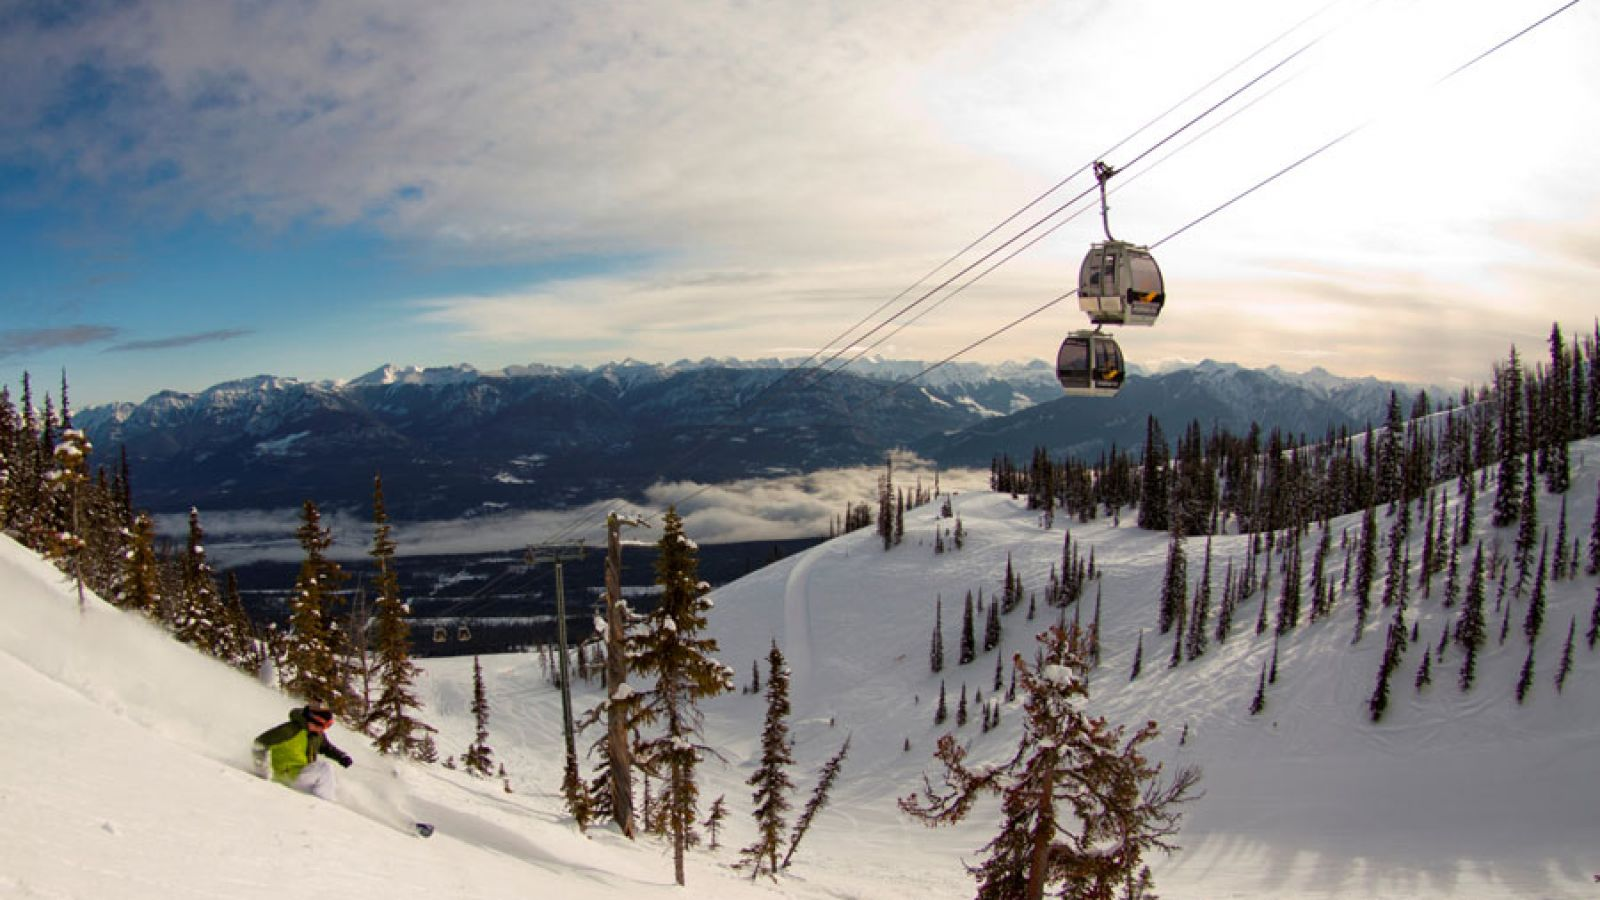 The Winston Lodge is located 150 metres from the gondola.